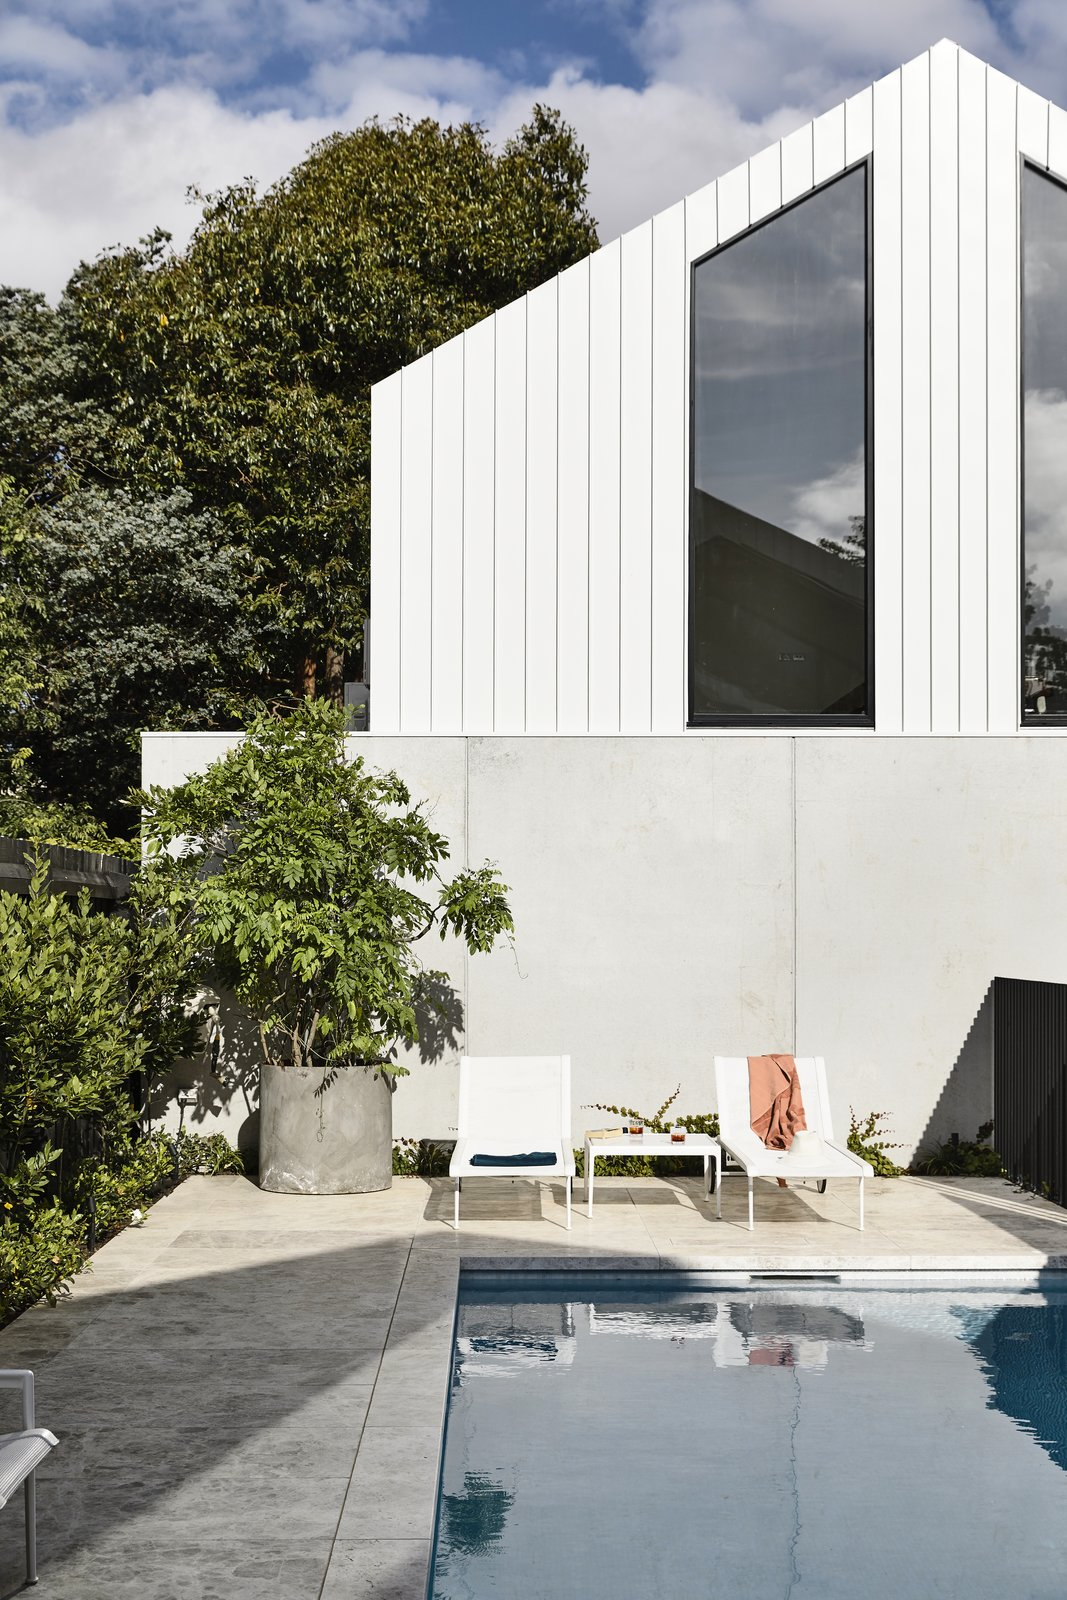 Scandizzo House, Kennon+ pool area lounge chairs